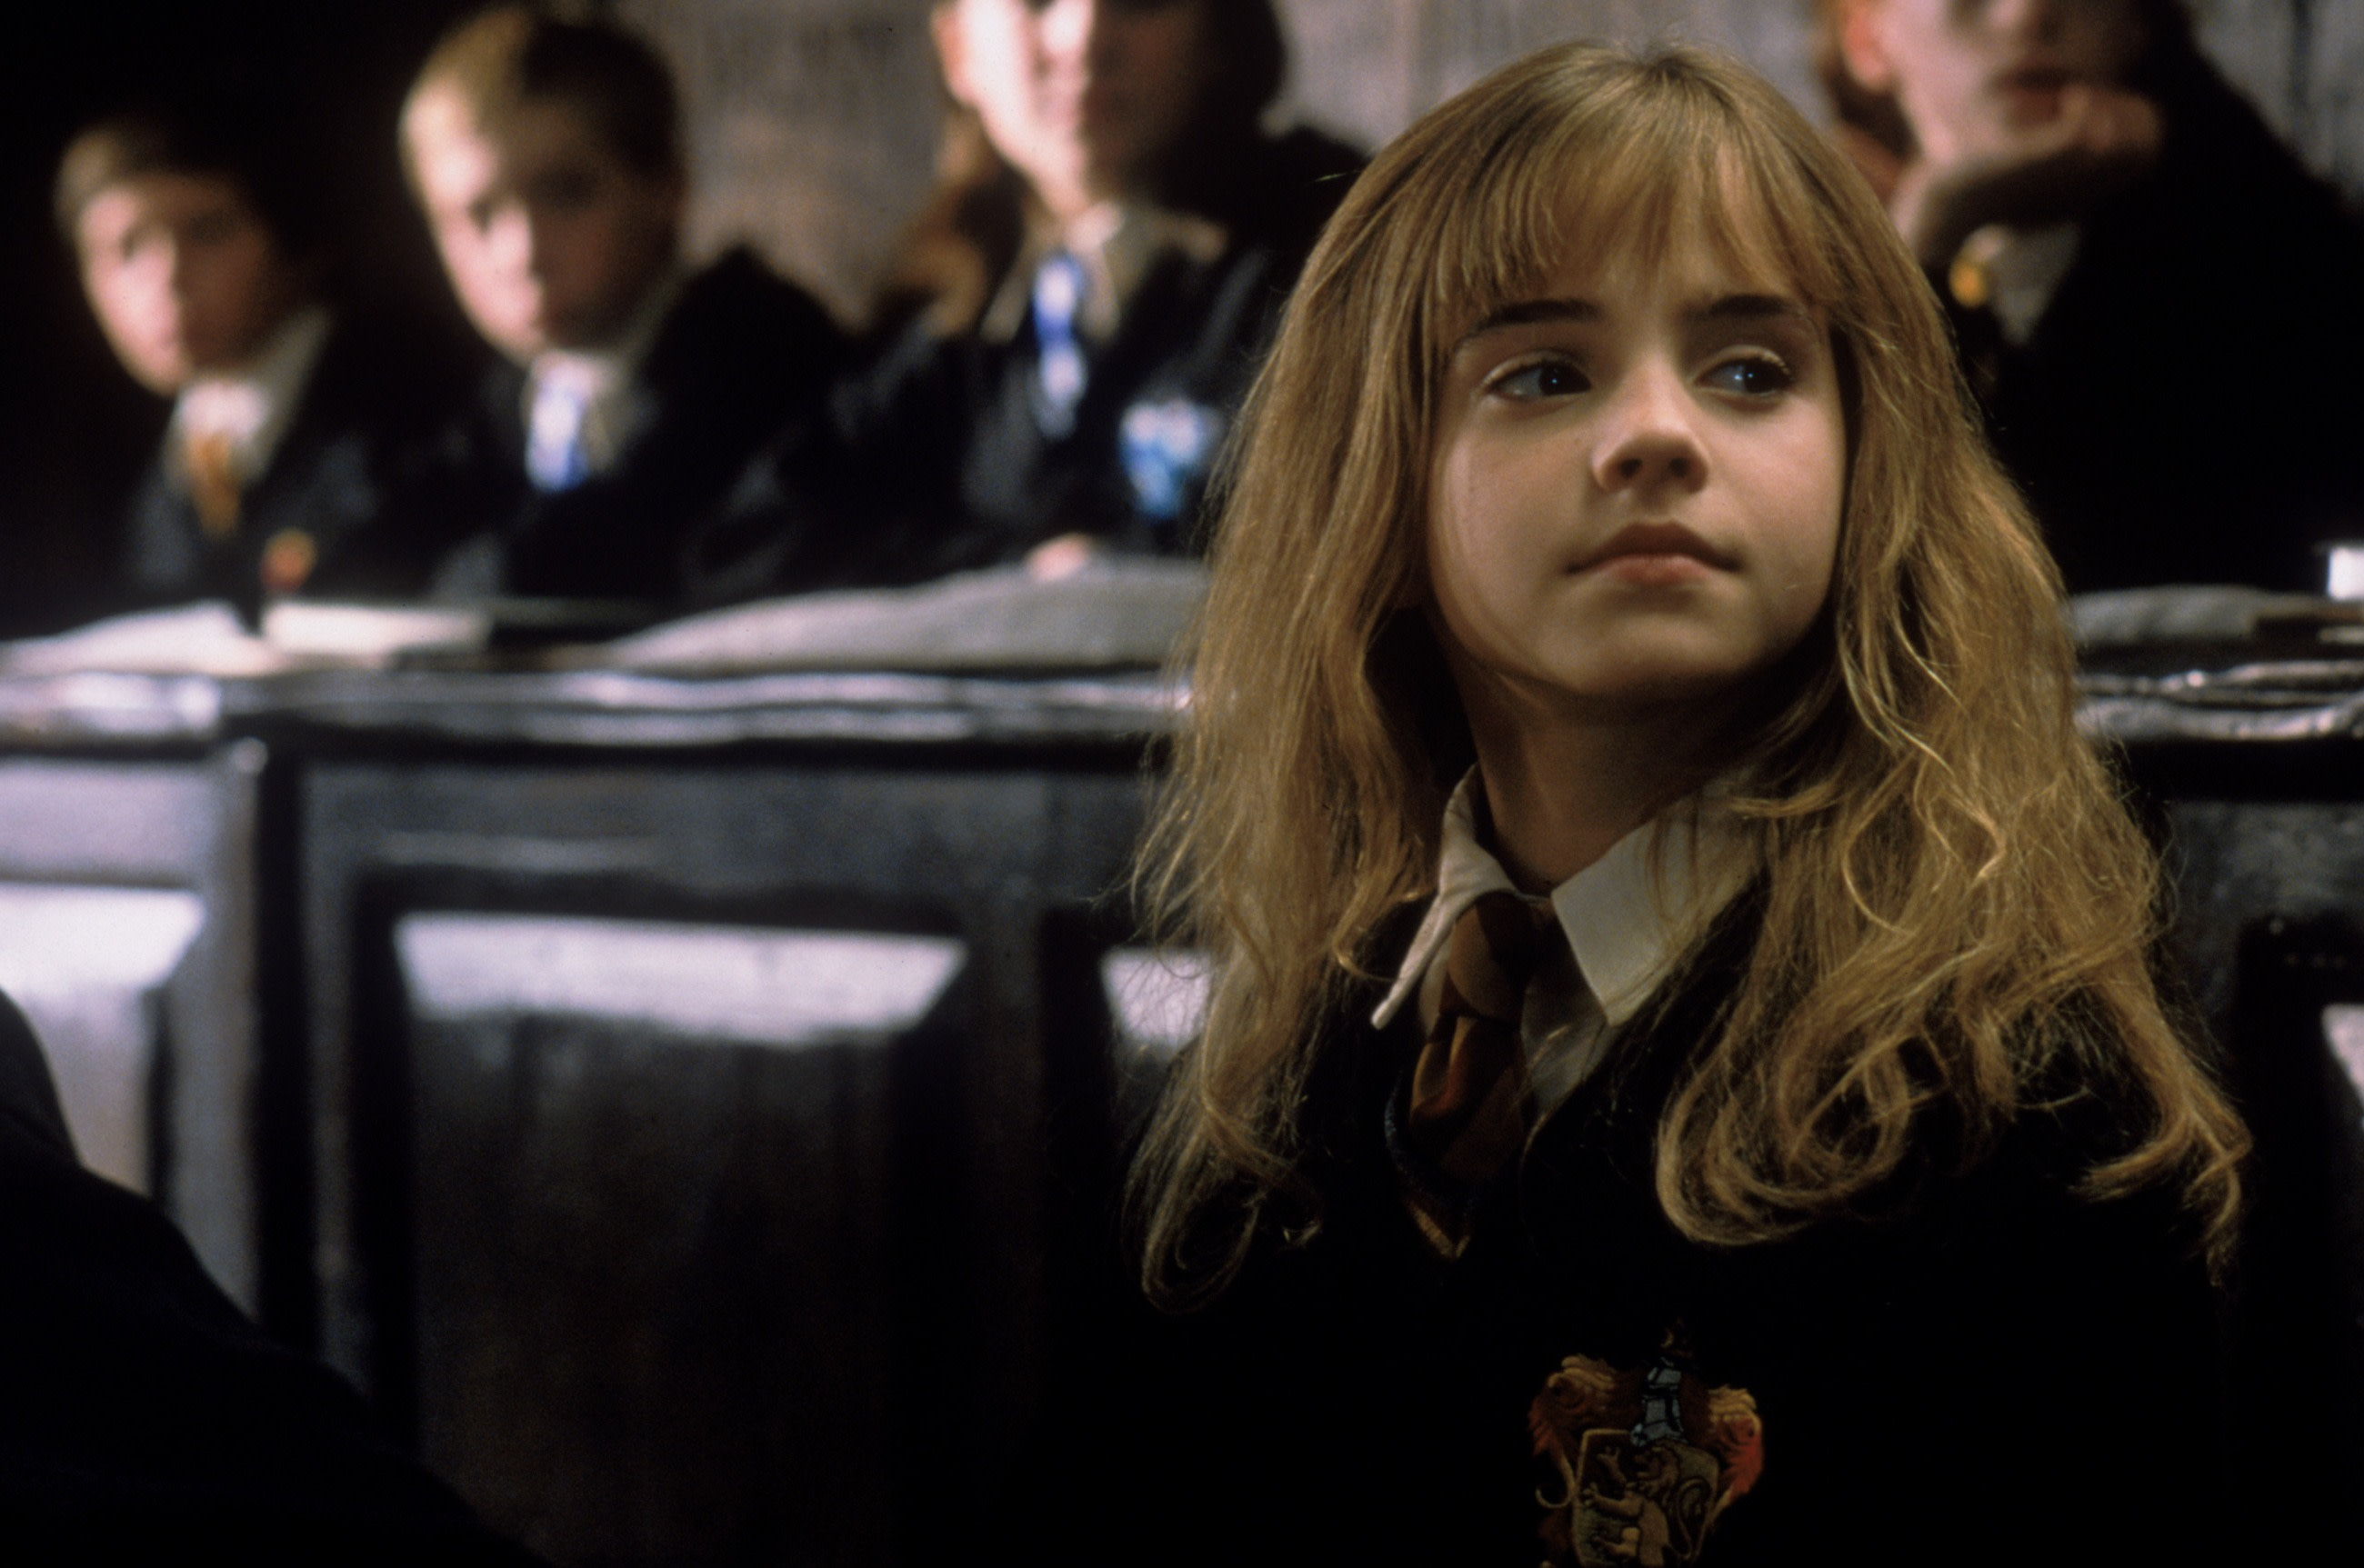 WB-HP1-F1-hermione-in-class-philosophers-stone